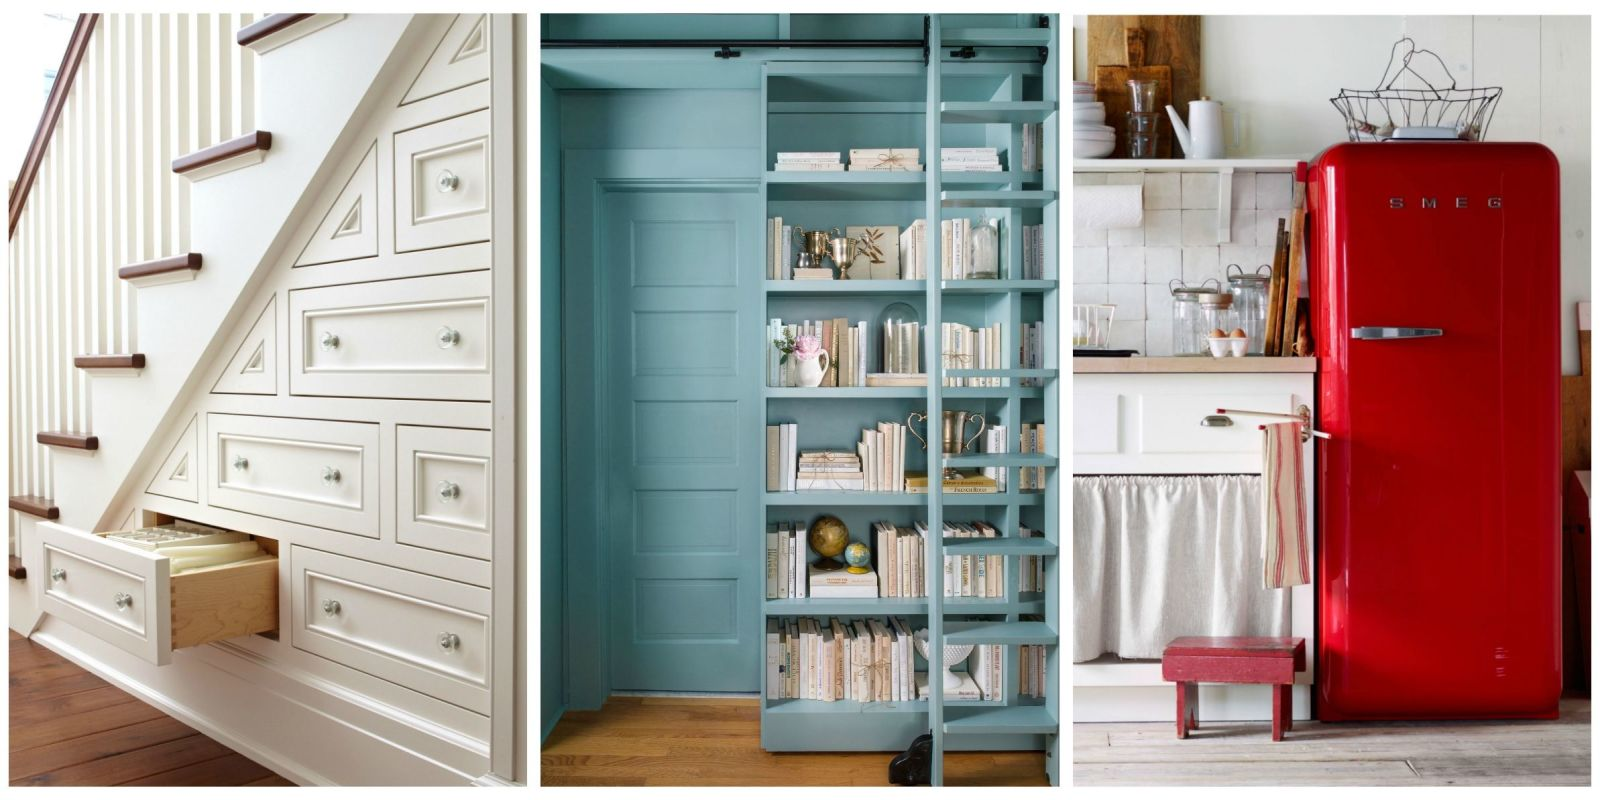 17 Small Space Decorating Ideas